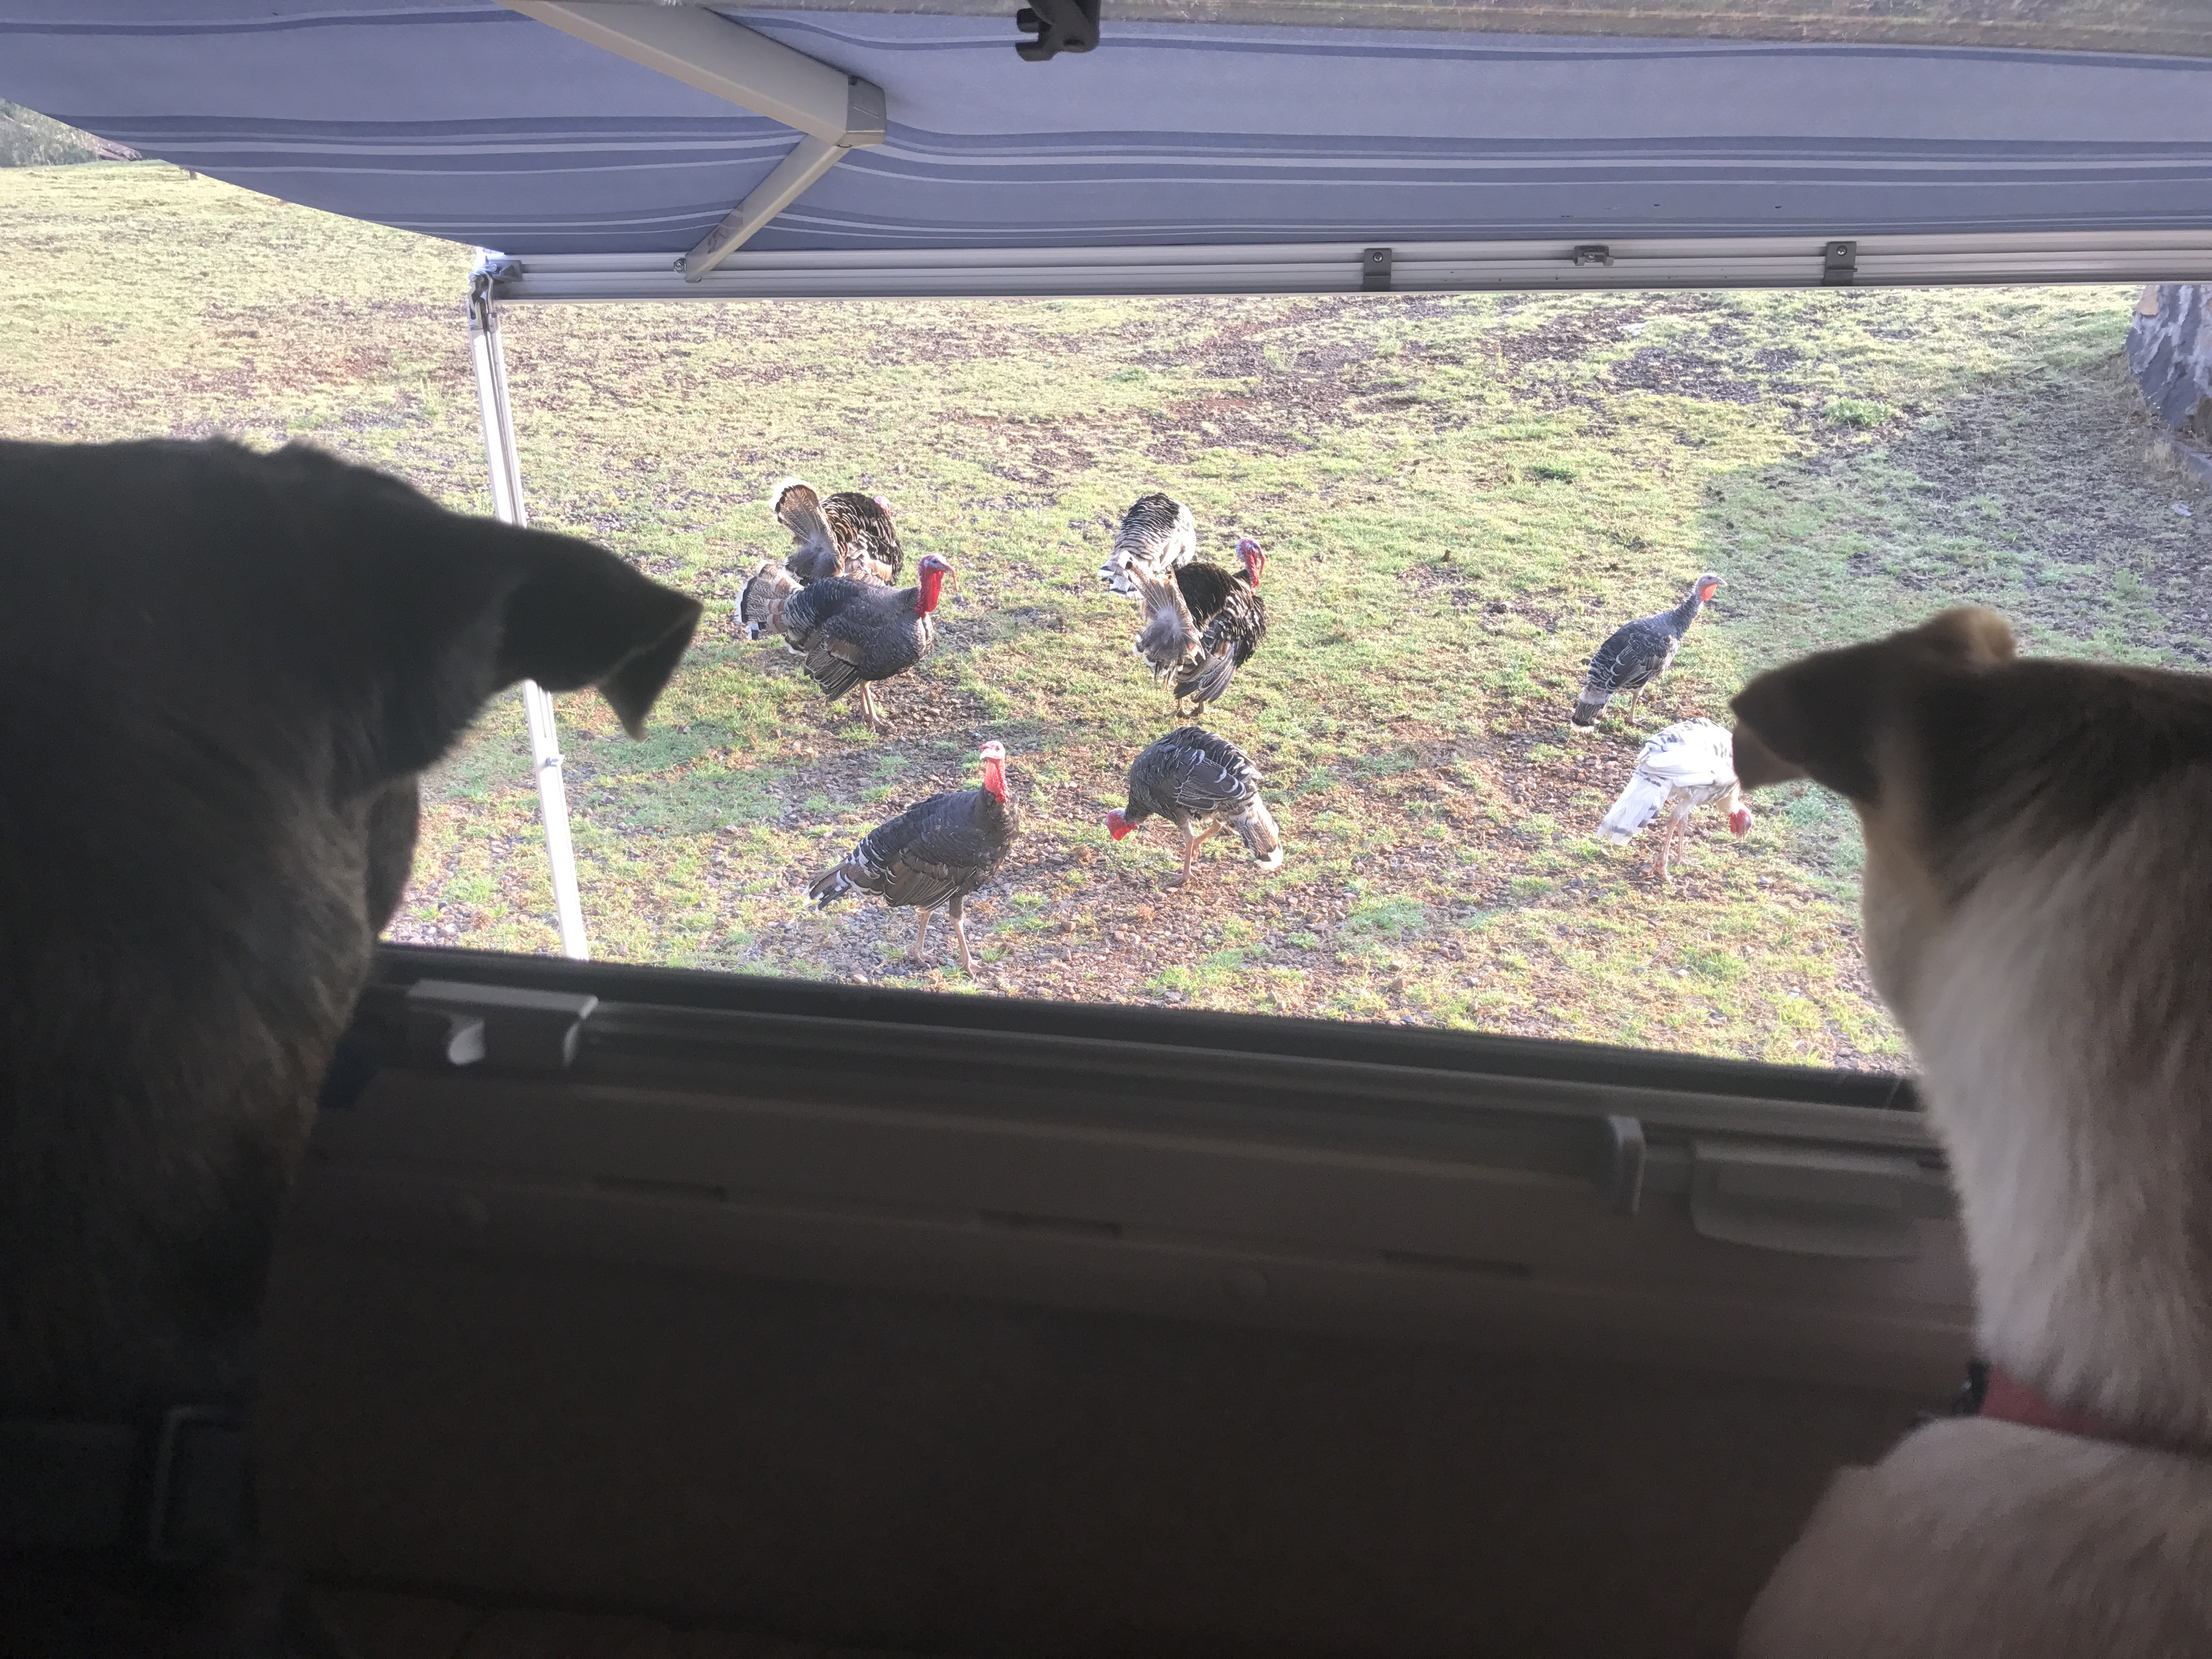 turkeys at the window.JPG